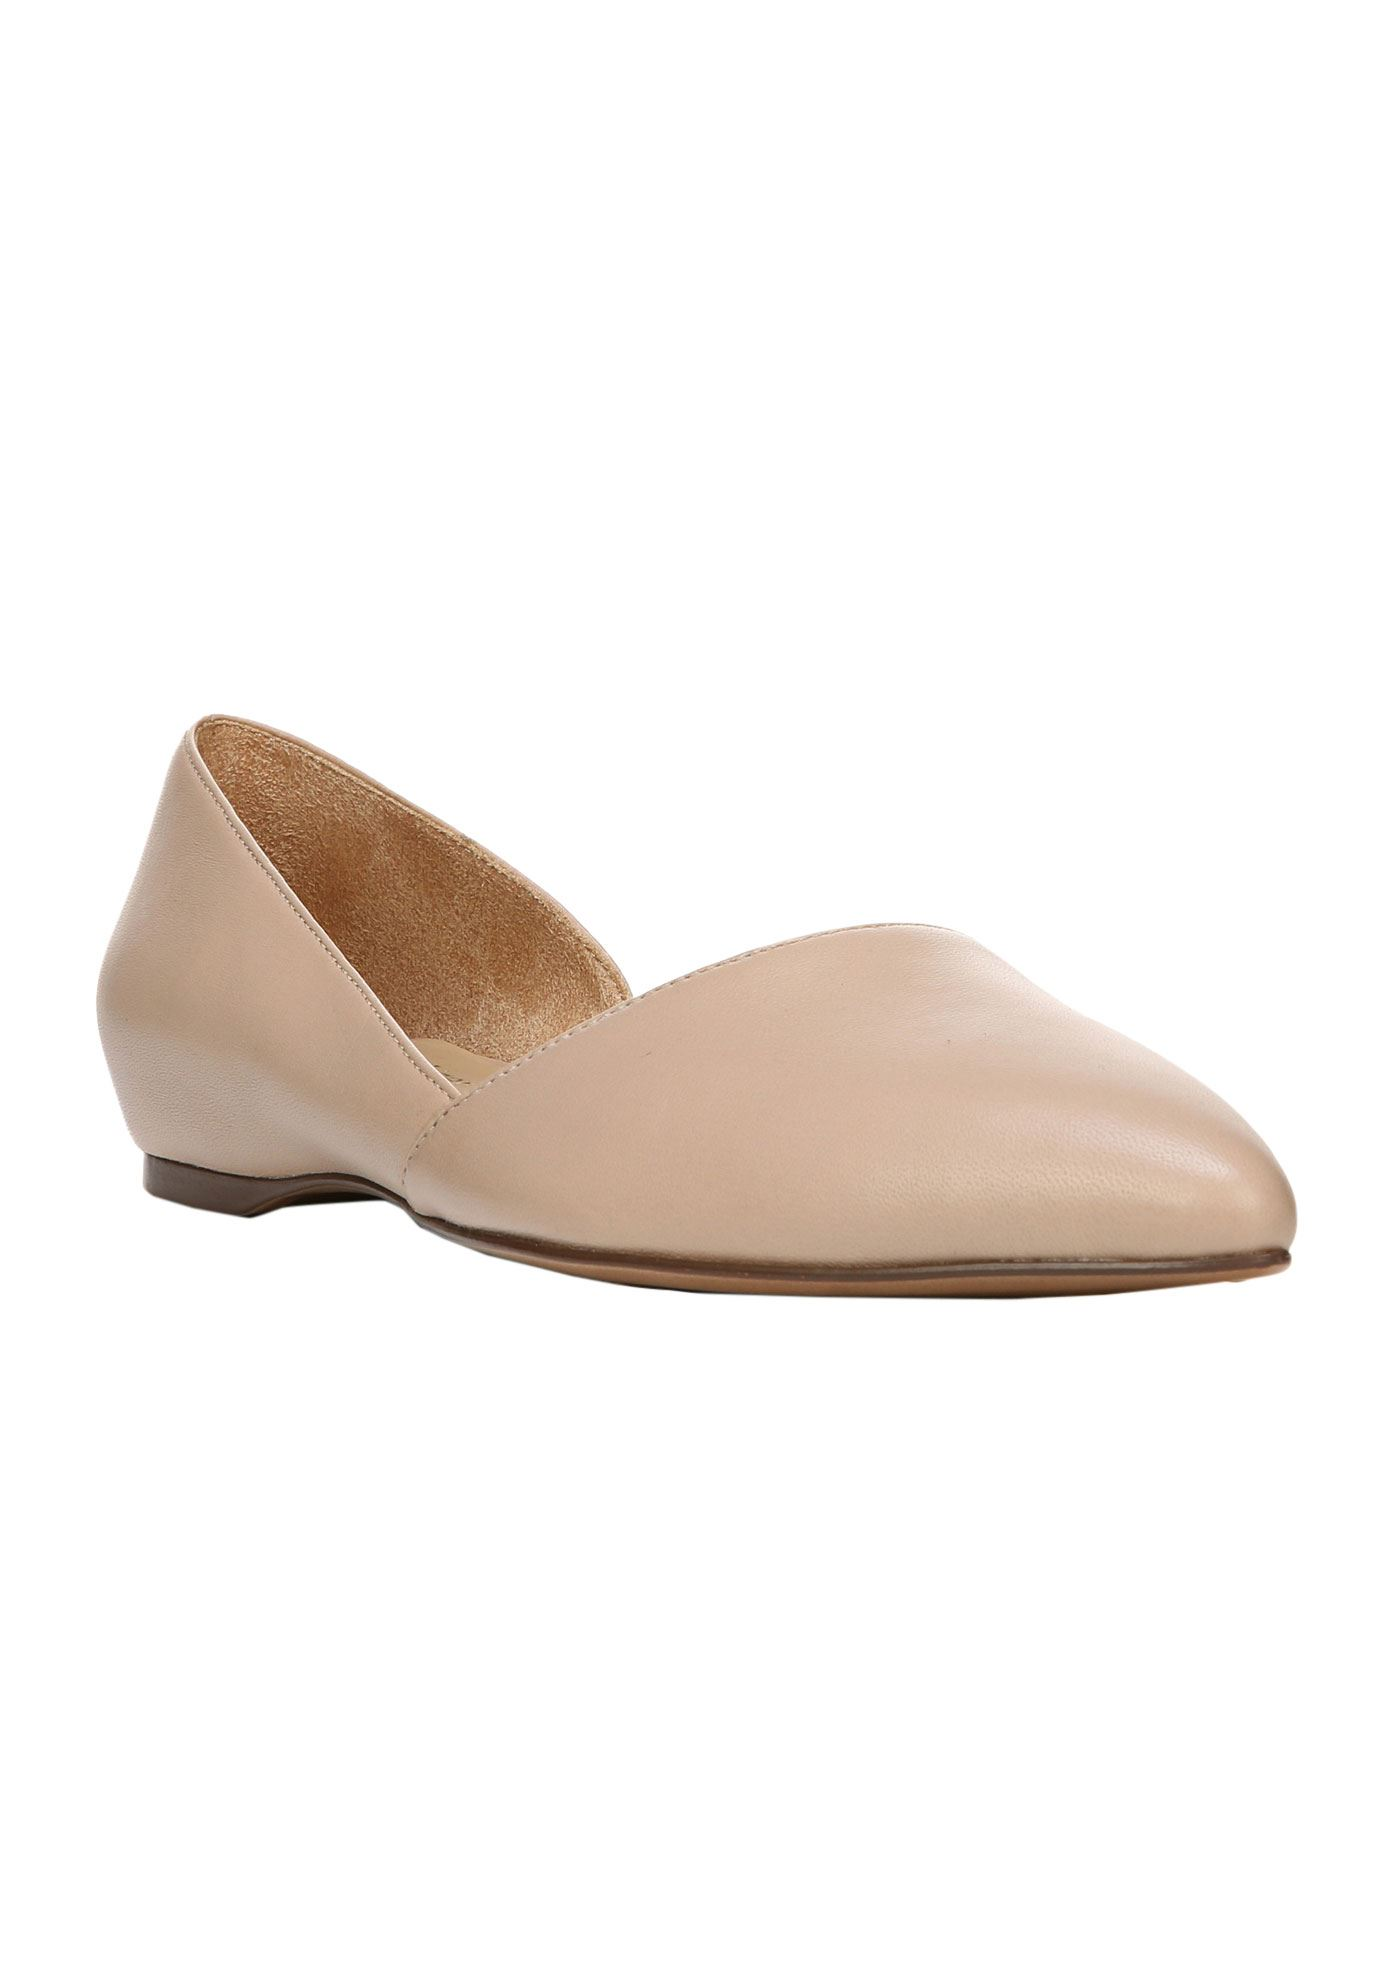 Samantha Flats by Naturalizer®,